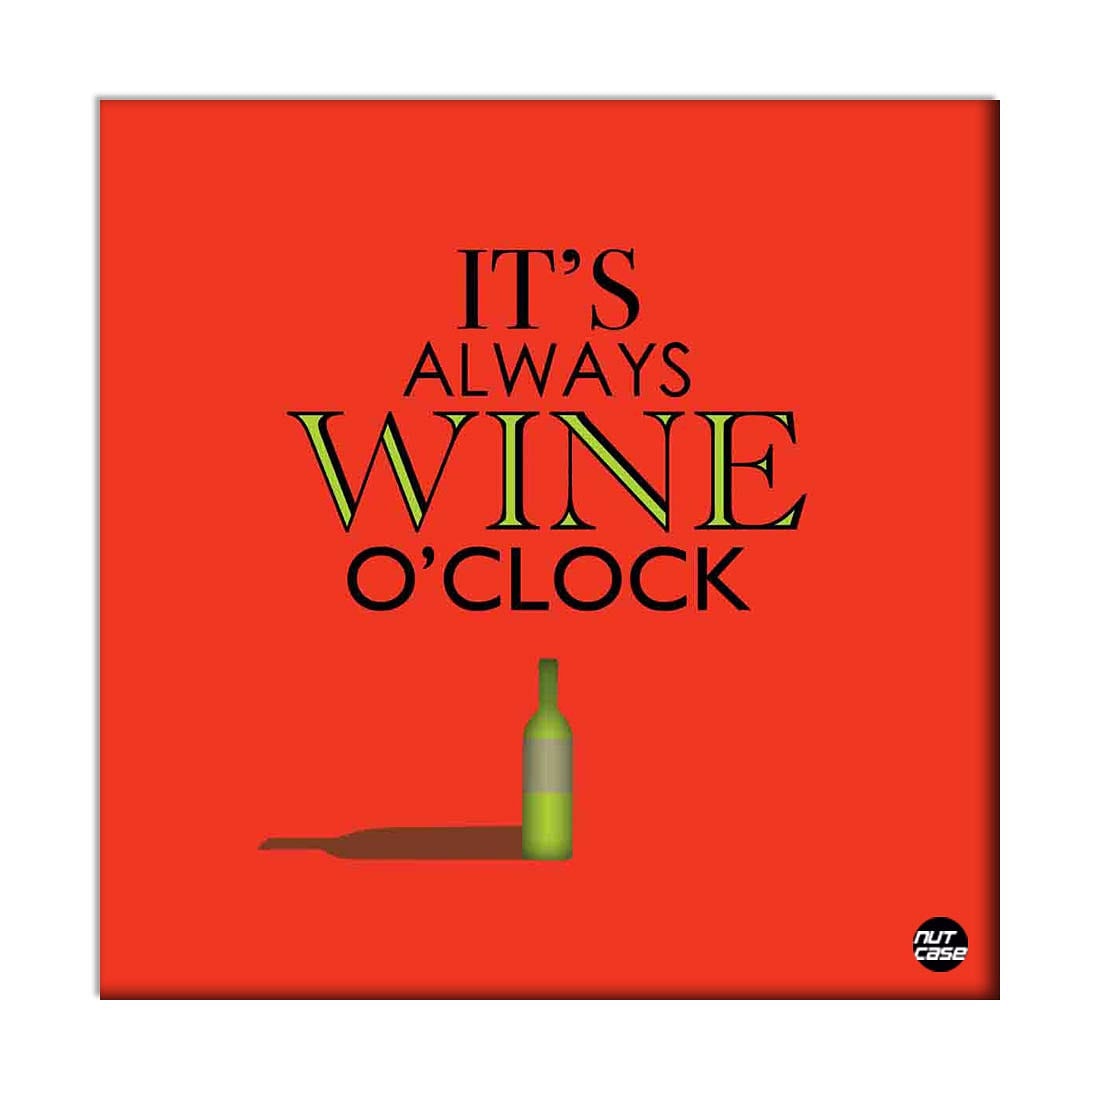 Wall Art Panels For Home Decor - Its Wine O'Clock Red